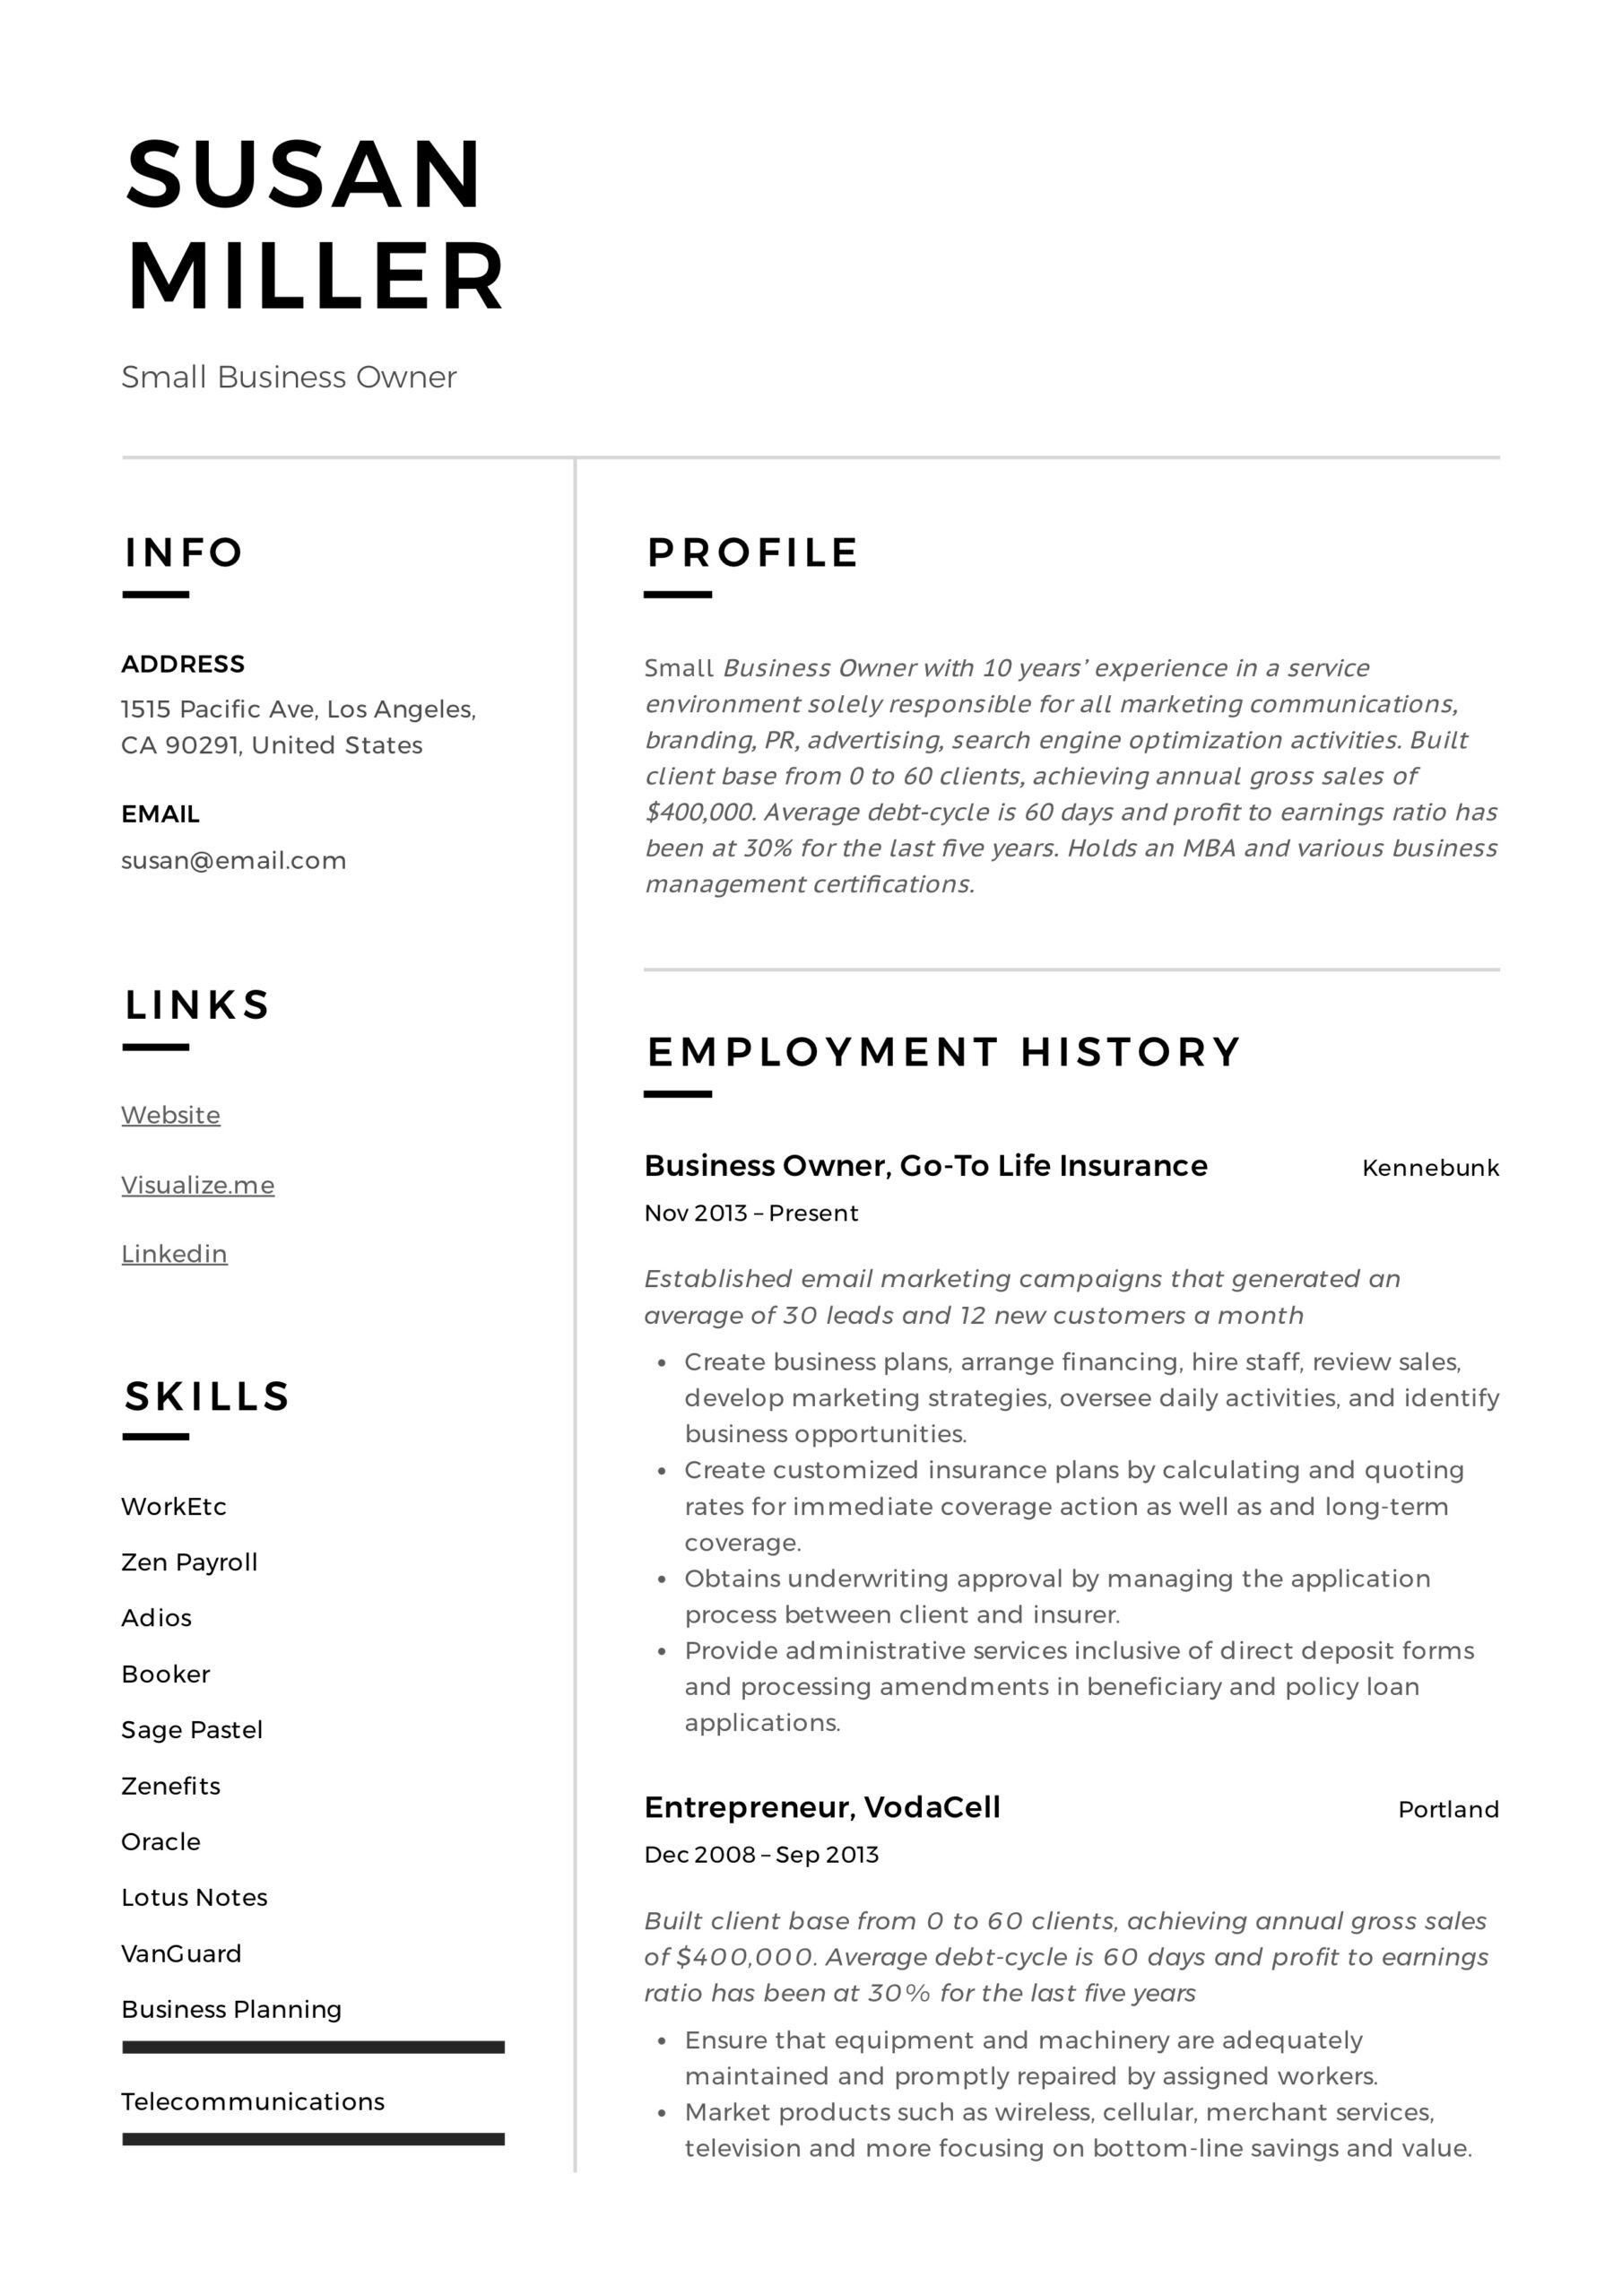 small business owner resume guide examples pdf entrepreneur samples example assessment Resume Entrepreneur Resume Samples